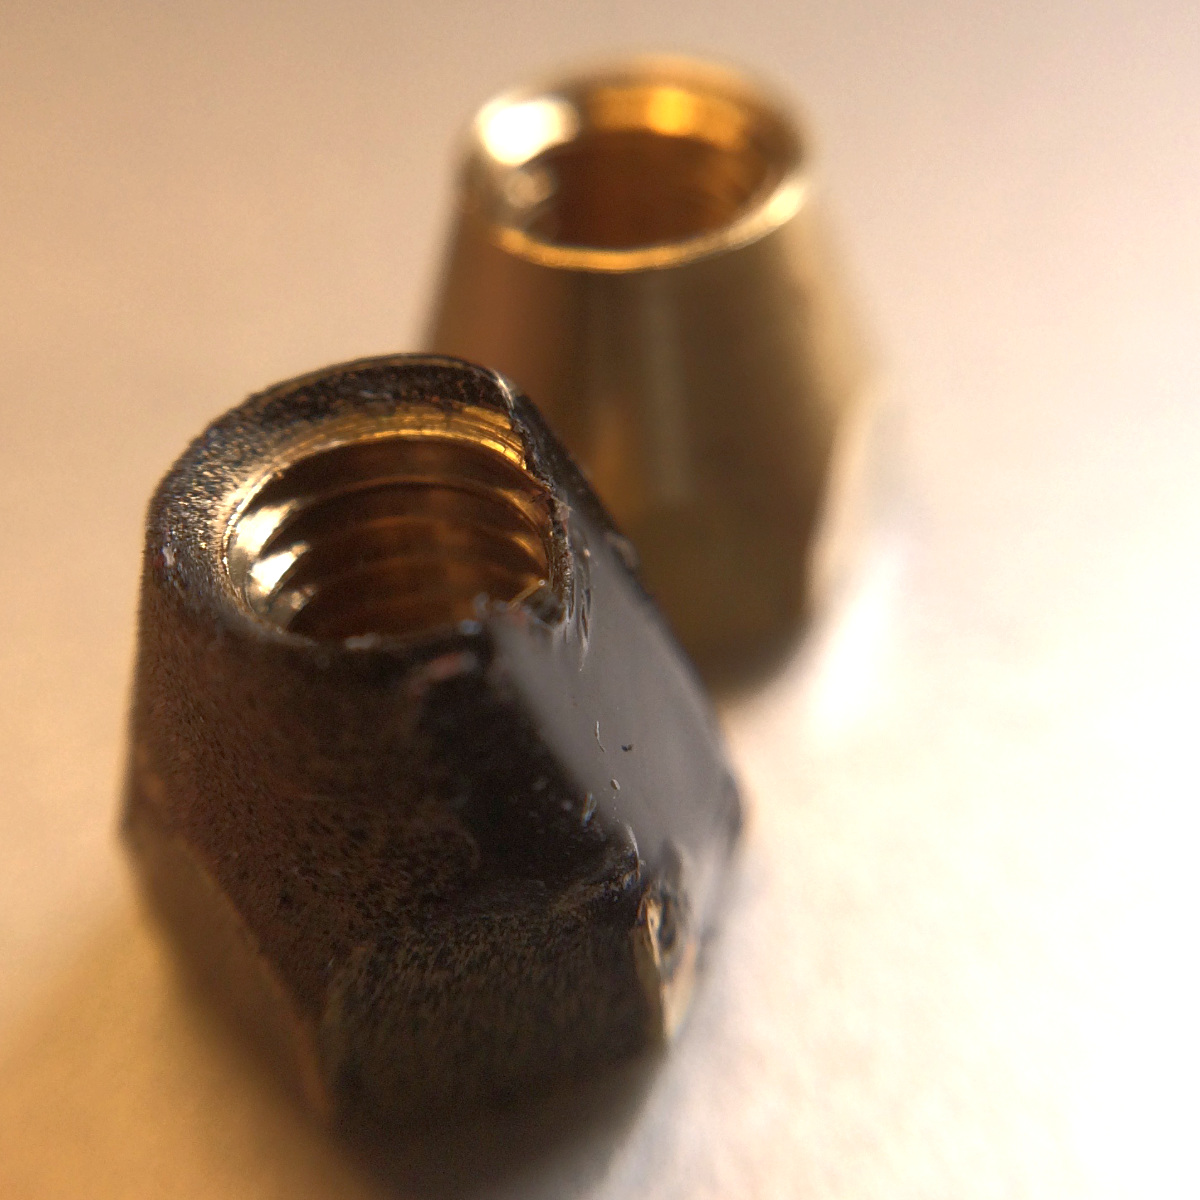 Comparison showing ground portion on truss rod nut (front) and normal nut (back)